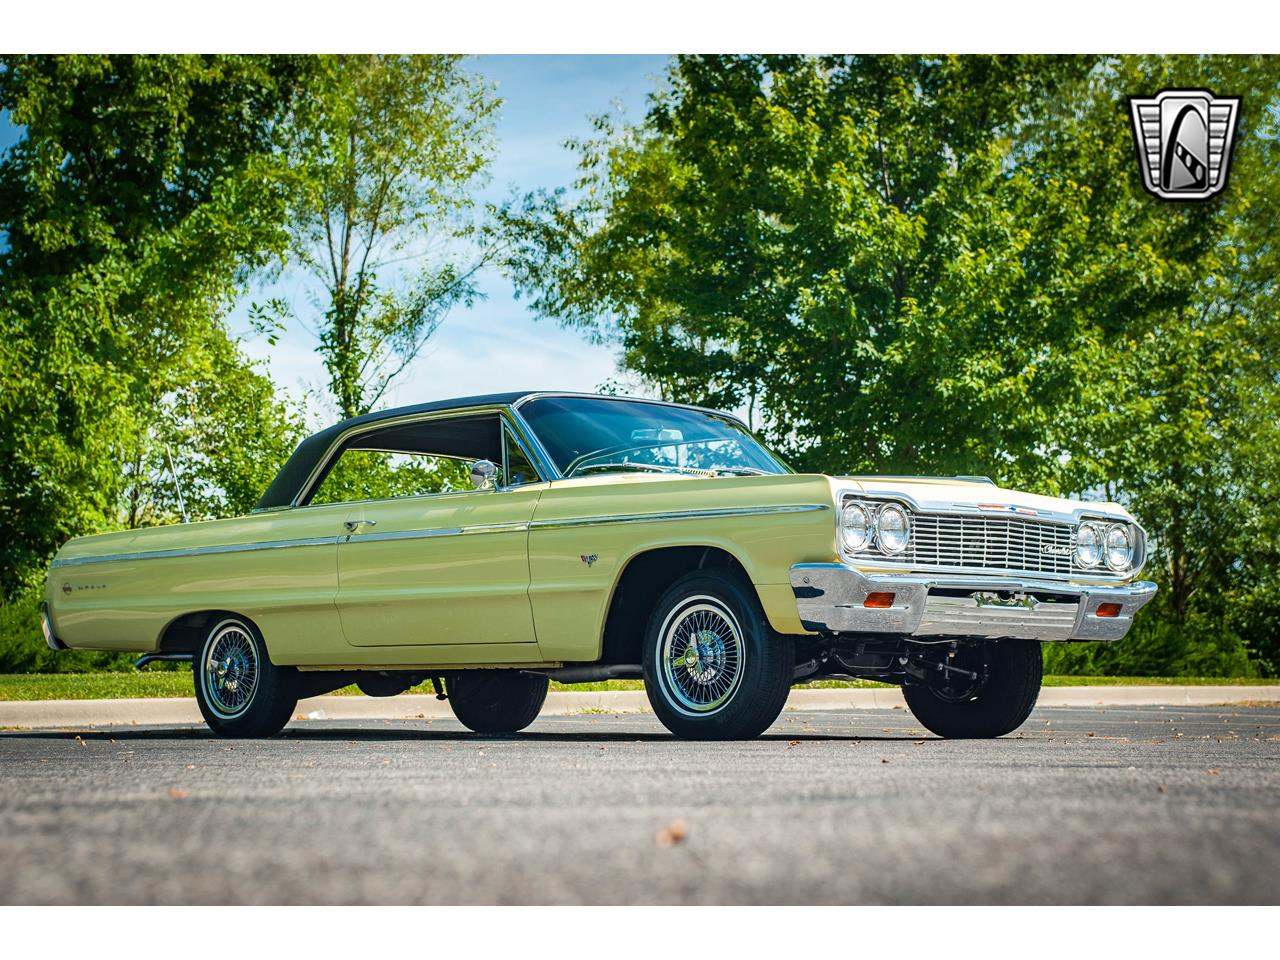 Large Picture of Classic '64 Chevrolet Impala located in O'Fallon Illinois - $45,000.00 - QRDR